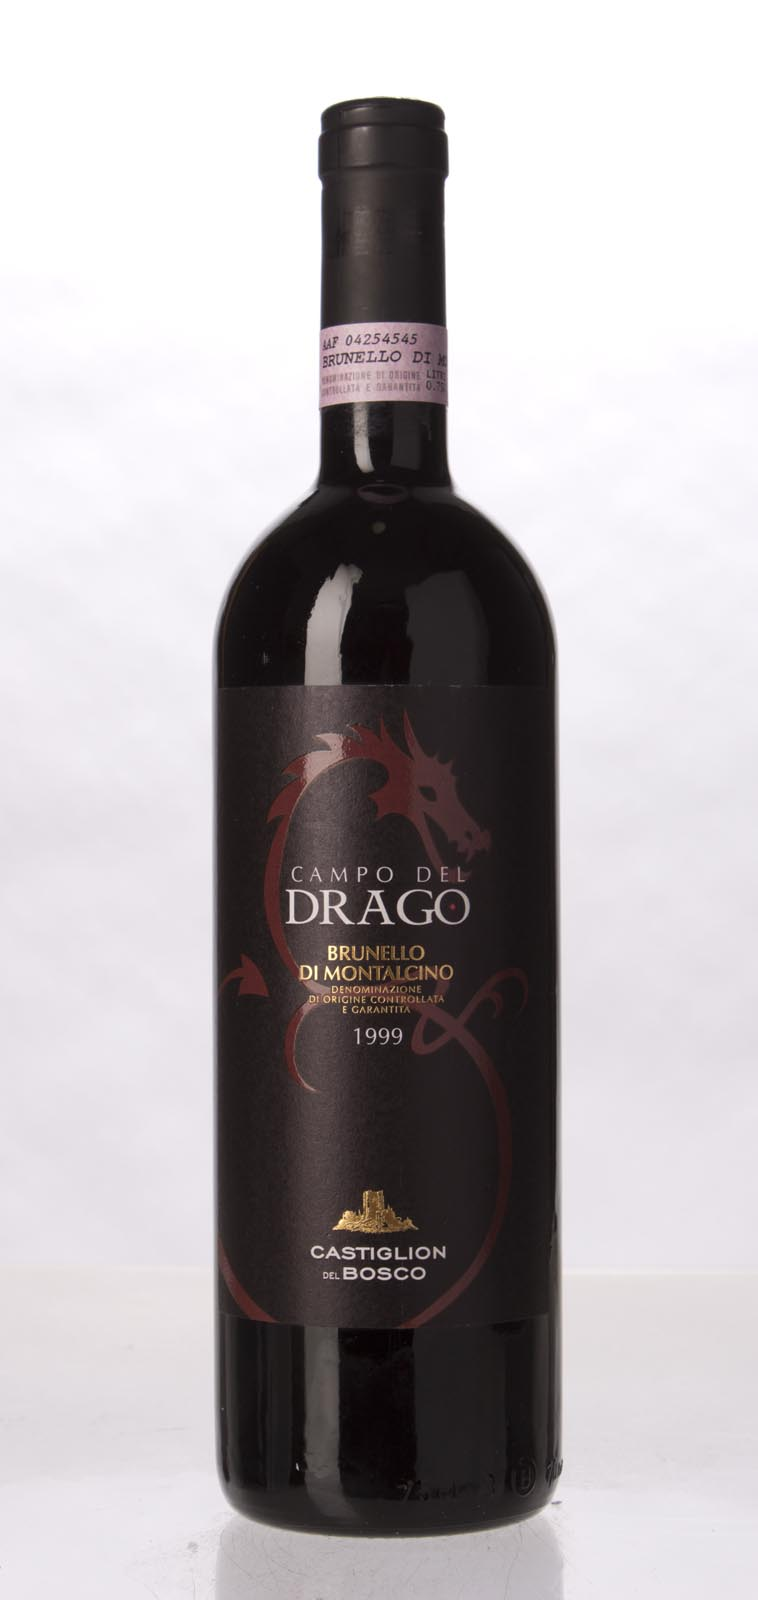 Castiglion del Bosco Brunello di Montalcino Campo del Drago 1999, 750mL (ST91, WS92) from The BPW - Merchants of rare and fine wines.